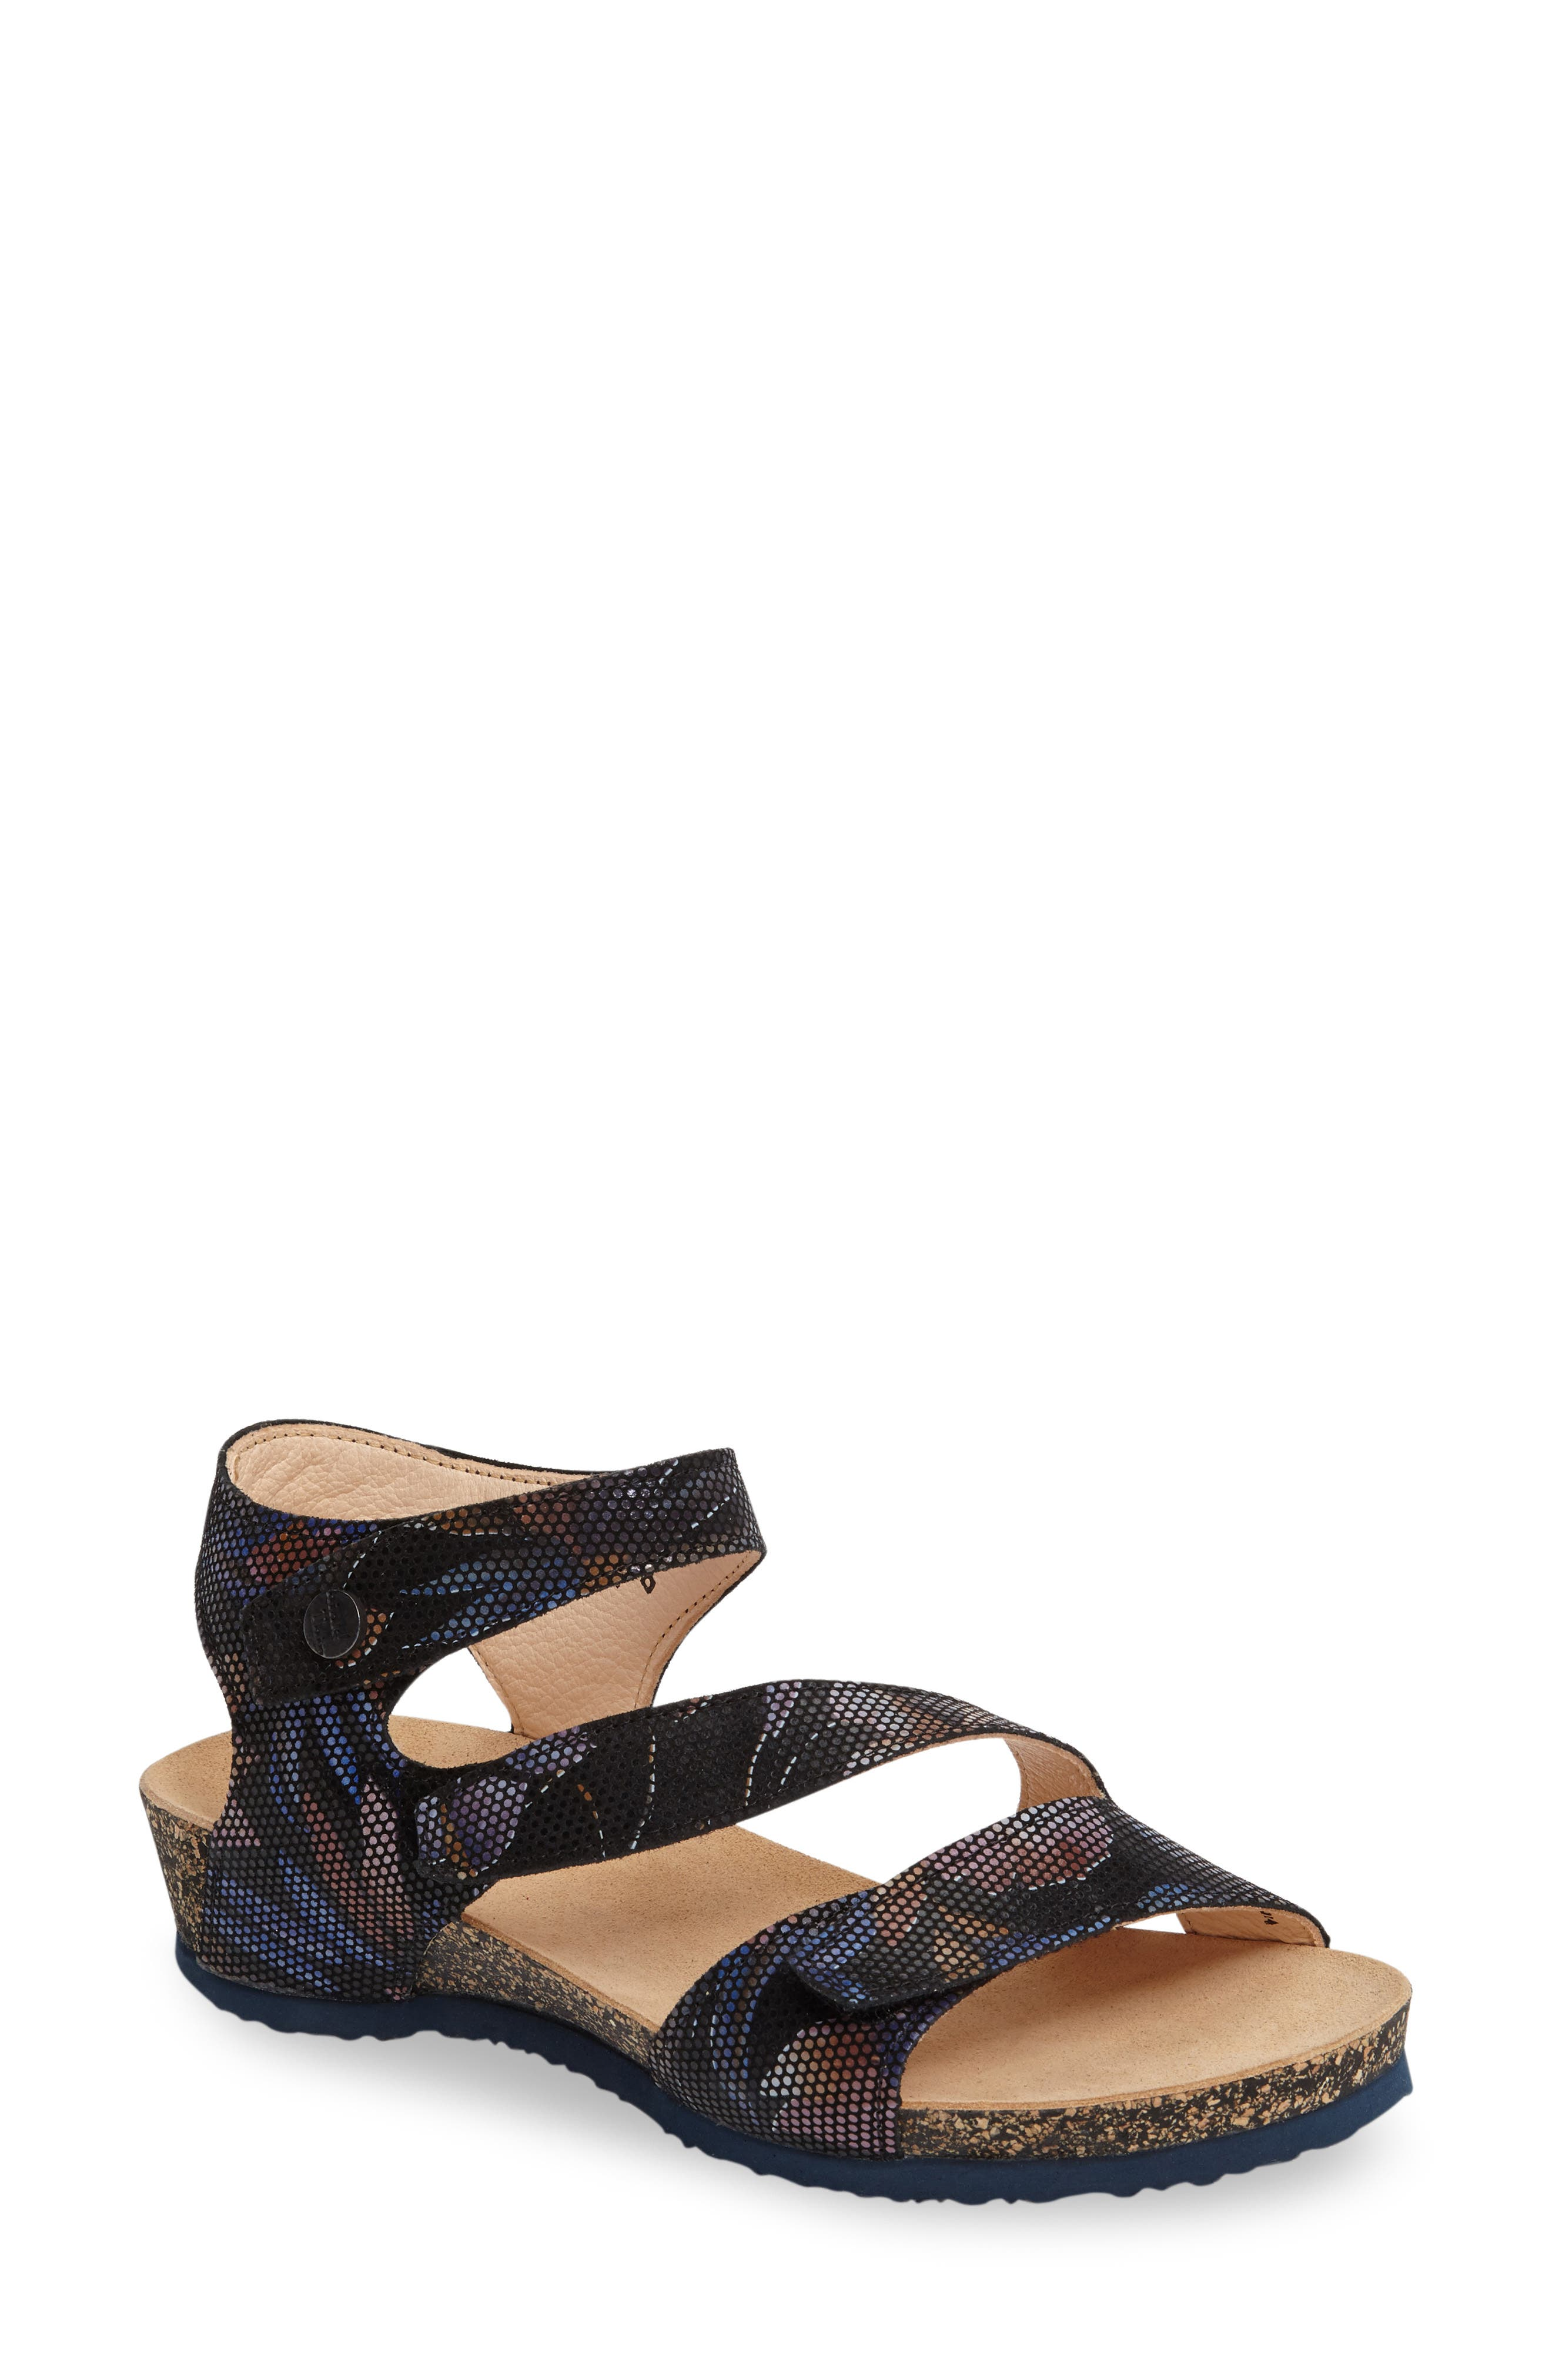 Main Image - Think! 'Dumia' Three Strap Sandal (Online Only)